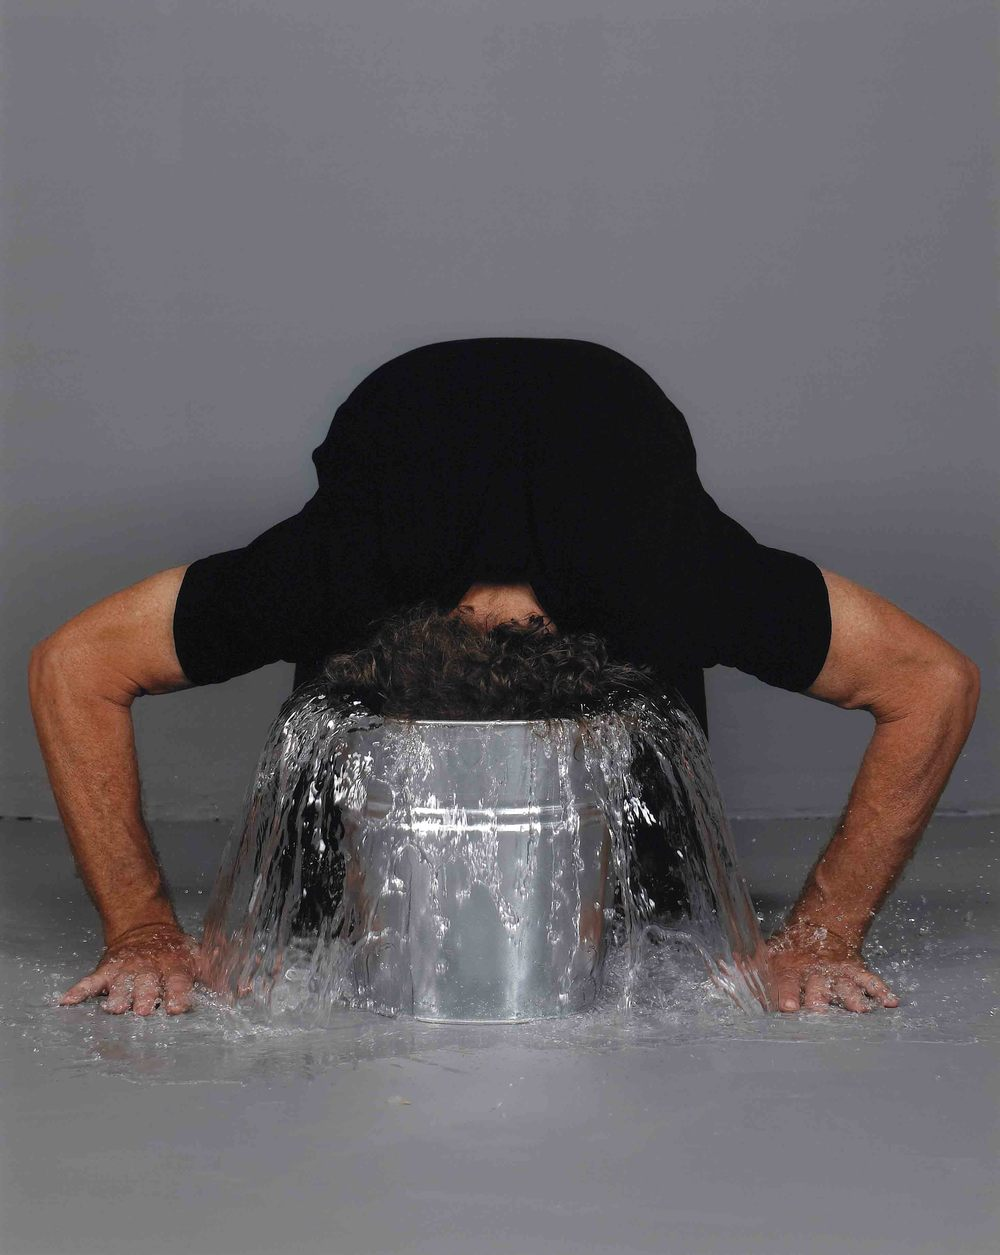 Max Dean, Bucket Head, 2010, printed 2011, Dye Coupler print, 52.3 x 41.8 cm; image 50.9 x 40.6 cm National Gallery of Canada, Ottawa